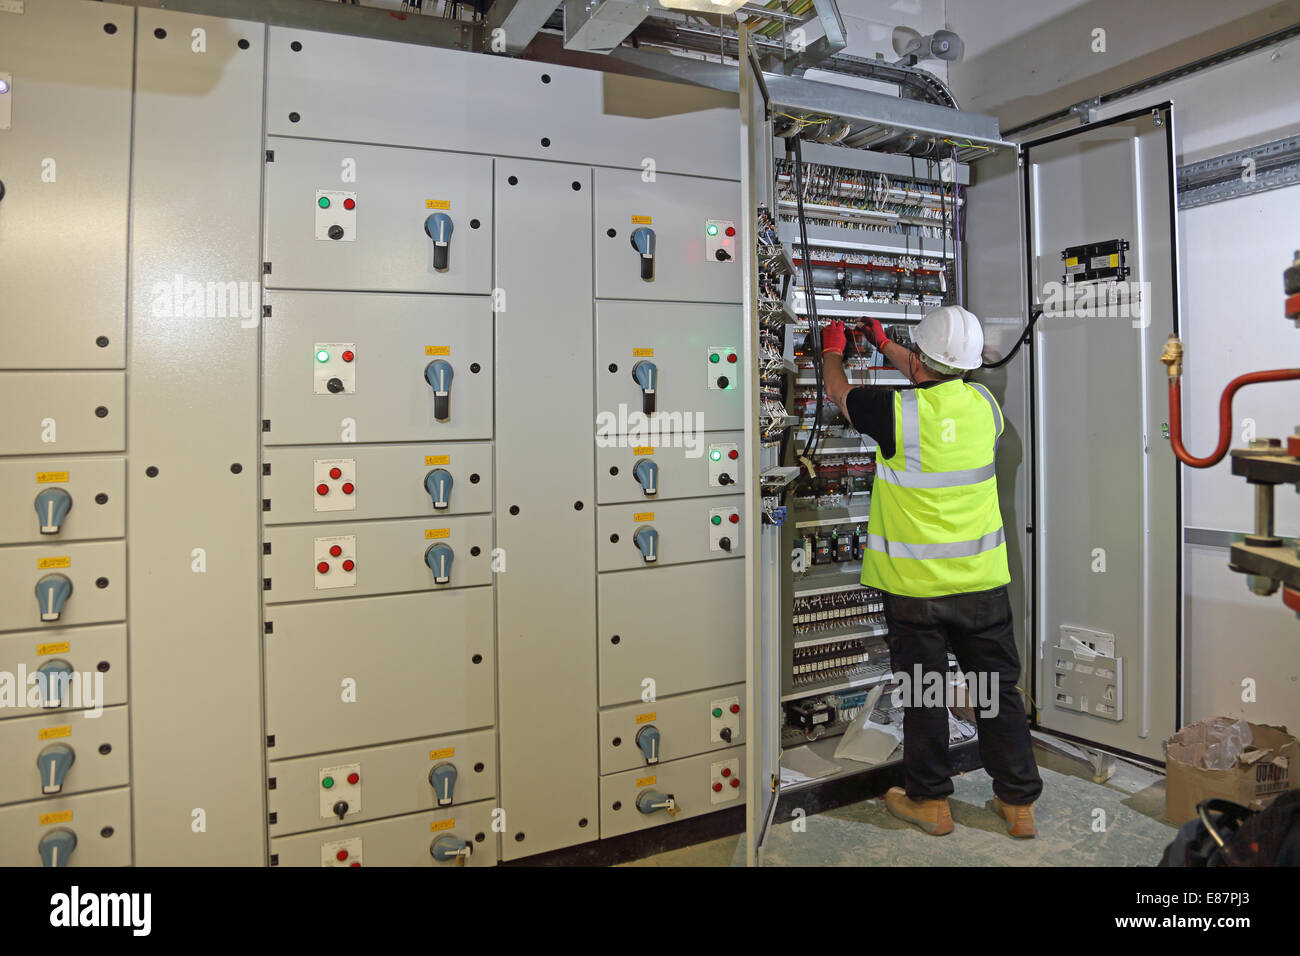 A building services engineer works in an electrical control cabinet ...